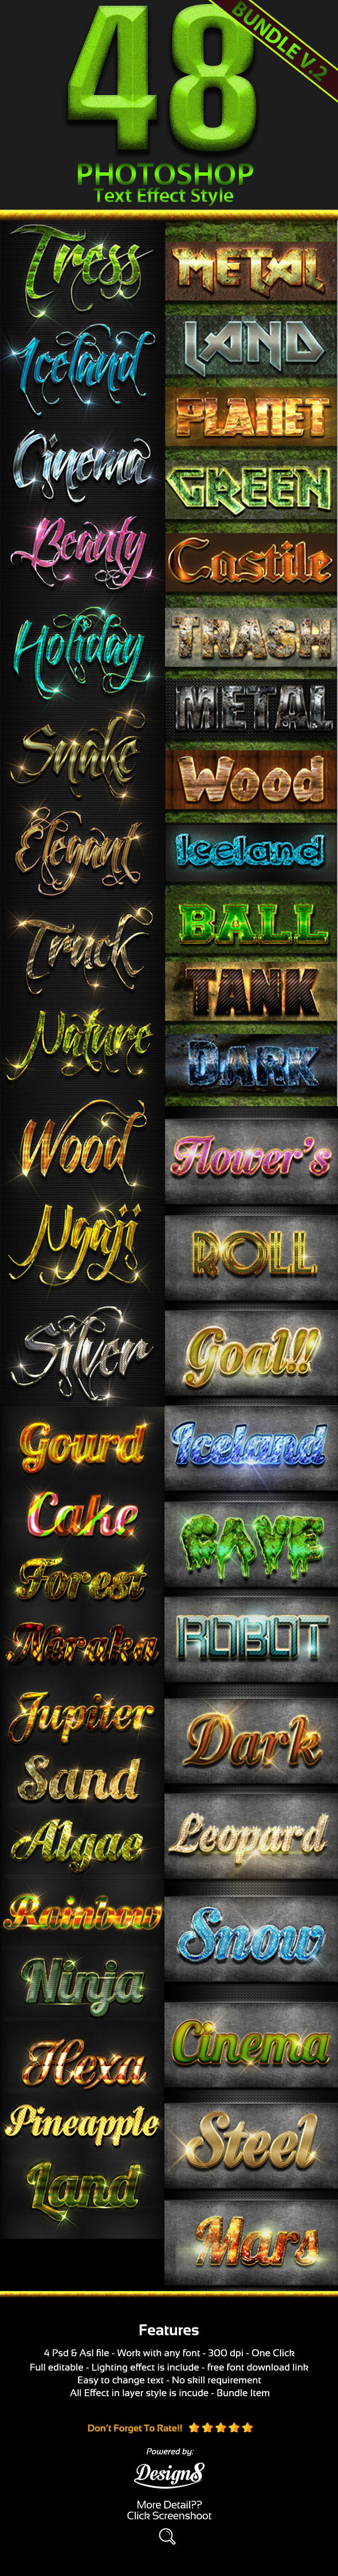 GraphicRiver 48 Photoshop Text Styles Bundle Part 2 11912118